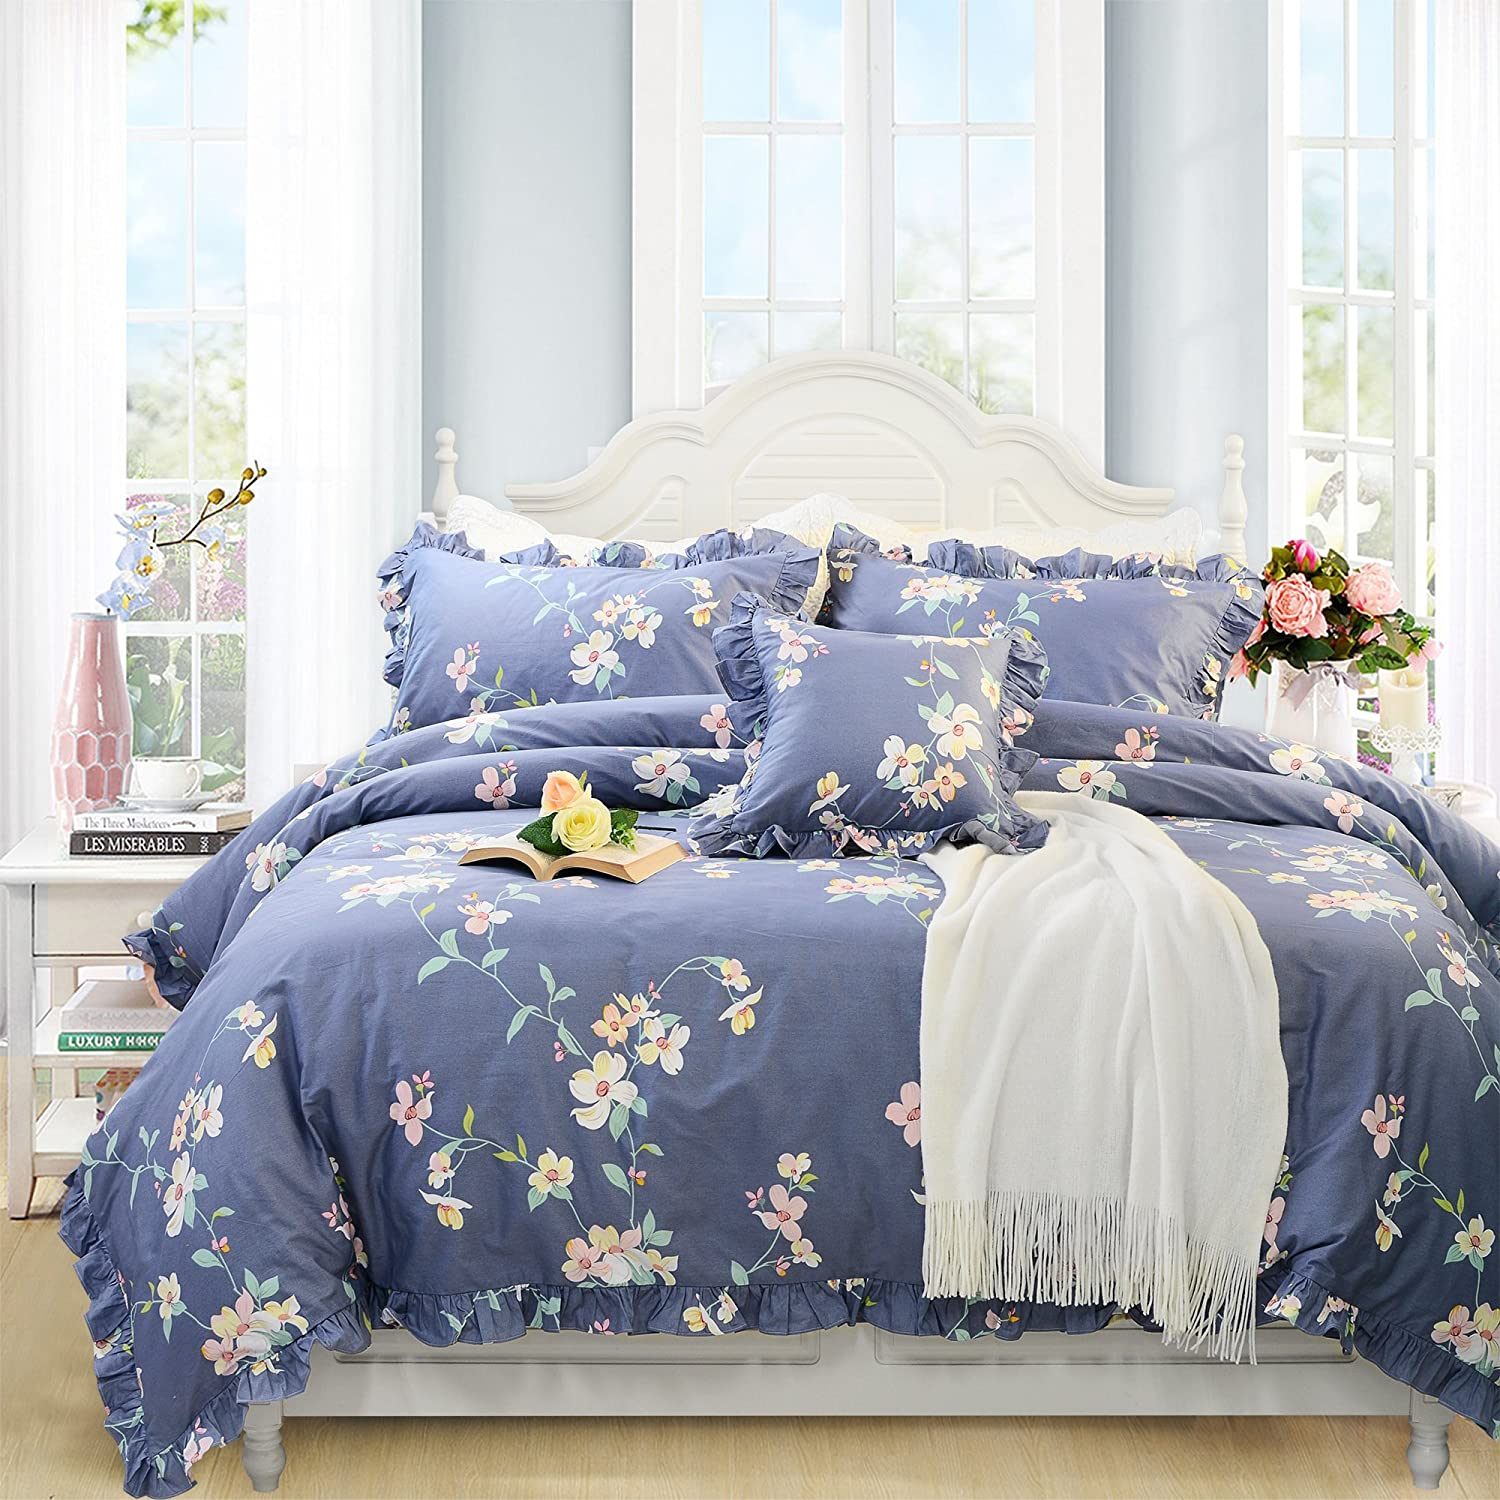 FADFAY Green Floral Duvet Cover Sets Vintage Flower Printed Bedding Hypoallergenic 100/% Cotton Designer Bedding Set 3 Pieces 1duvet Cover /& 2pillowcases Full Size, Ruffle Style